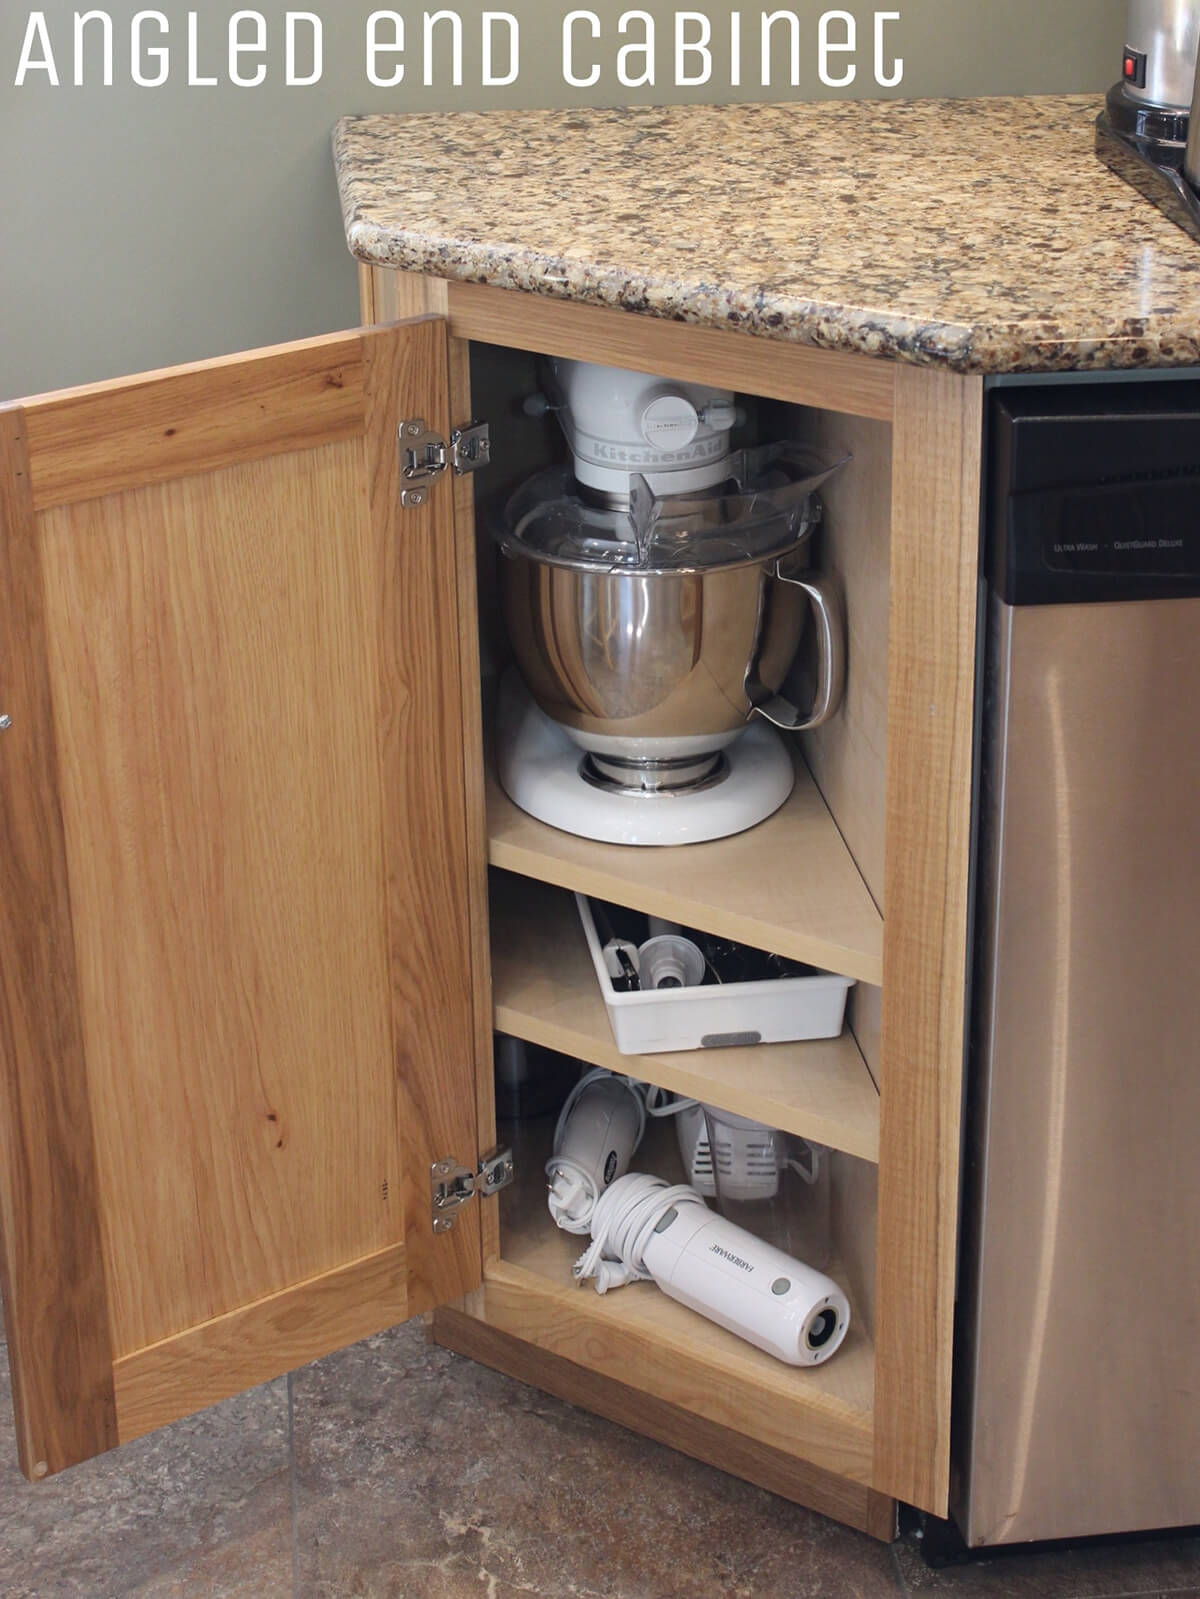 Angled End Cabinet for Appliances